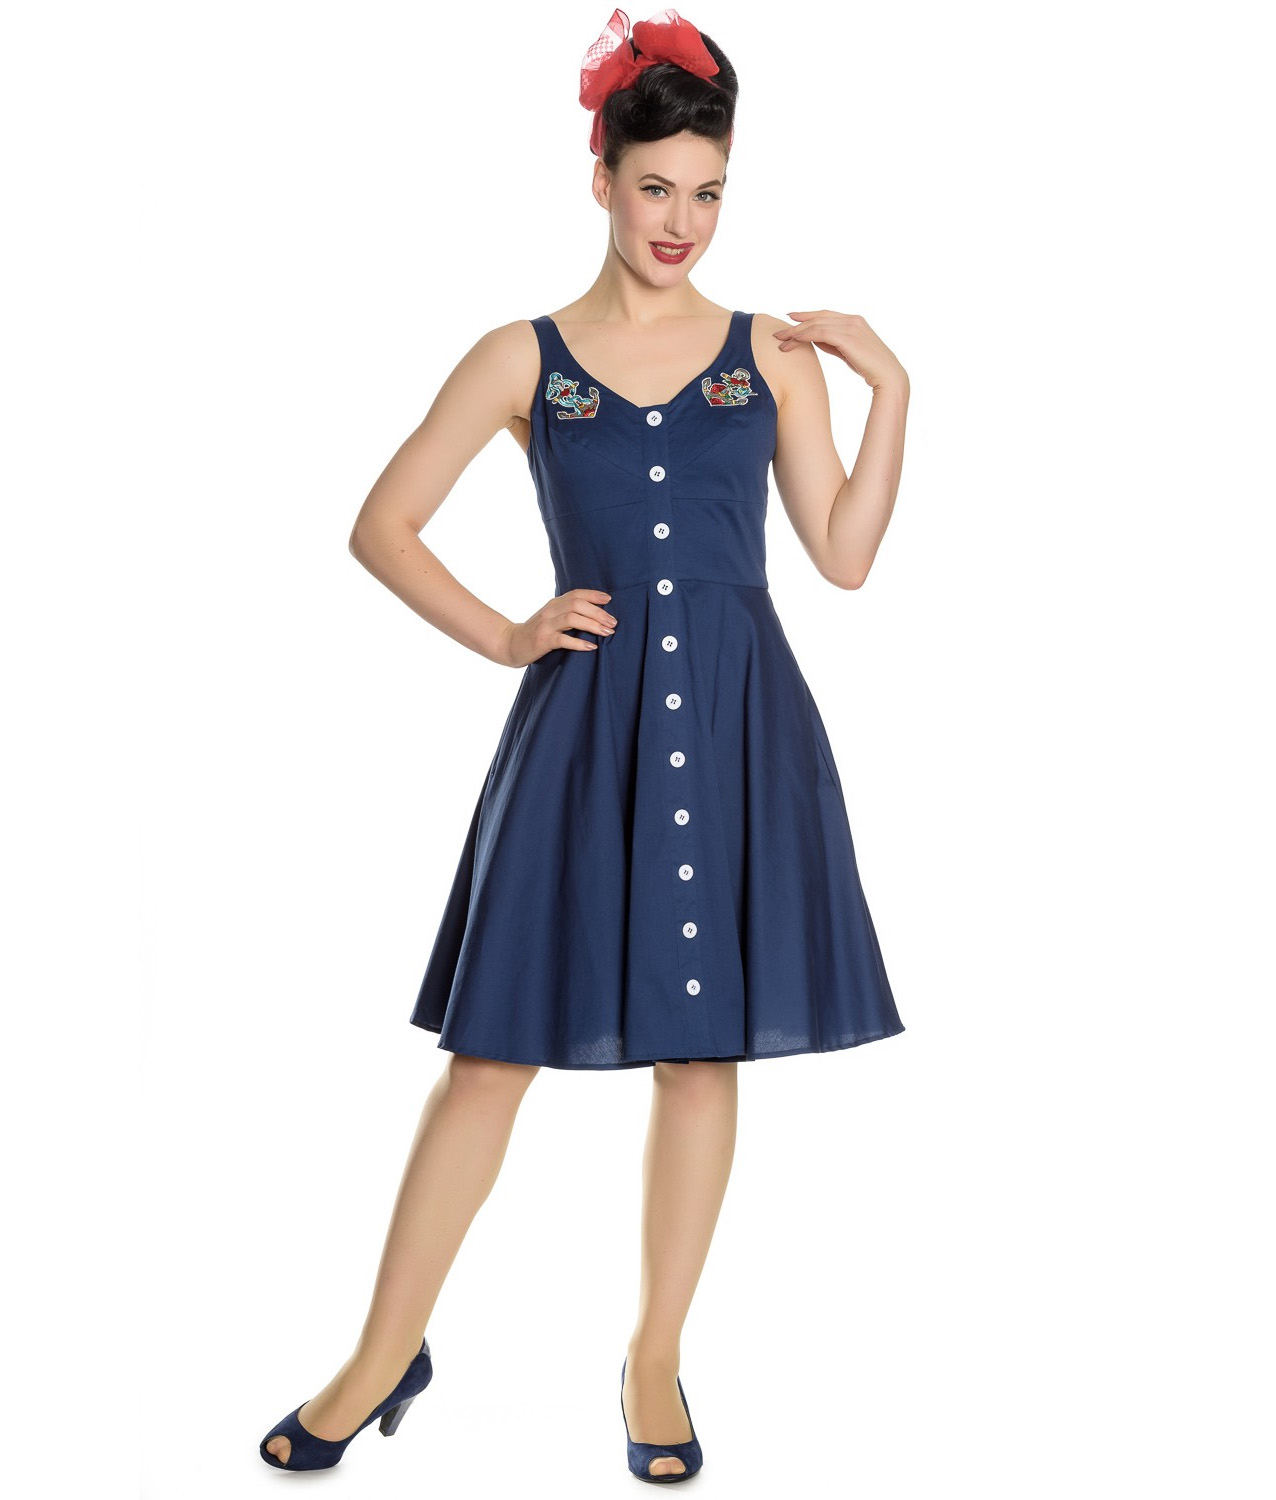 Hell-Bunny-Vintage-50s-Pin-Up-Dress-Navy-Blue-SELA-Nautical-Anchors-All-Sizes thumbnail 3